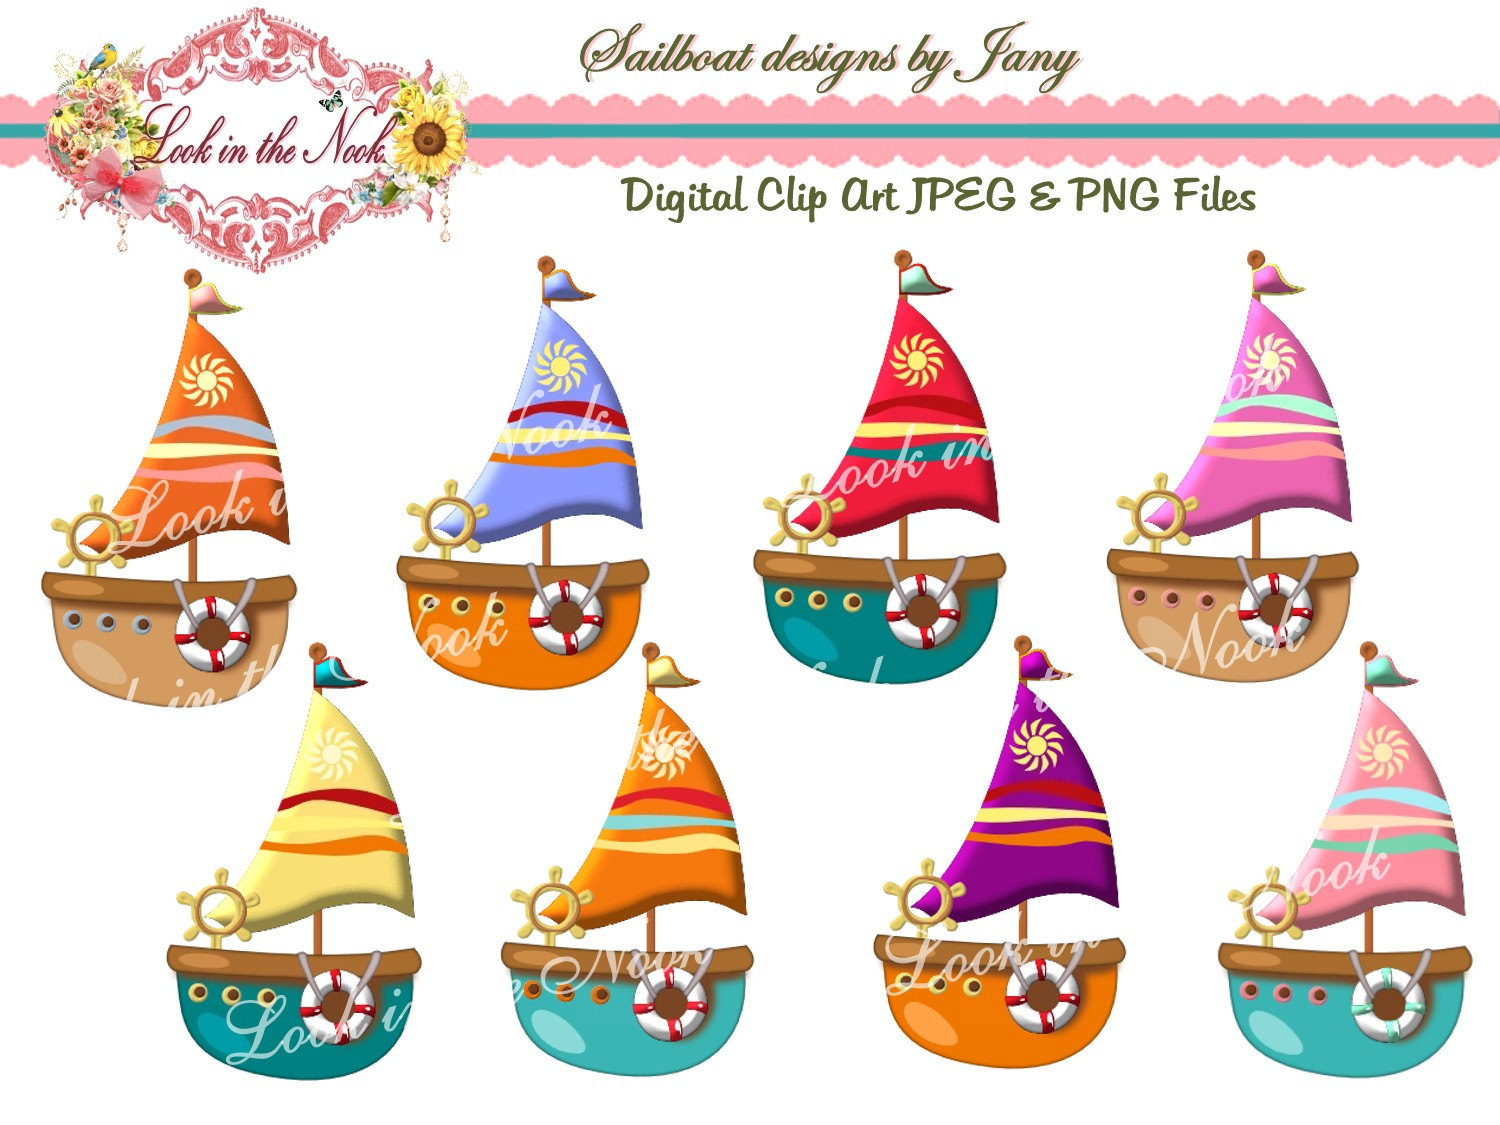 Boating clipart kid design. Digital sailboat graphic